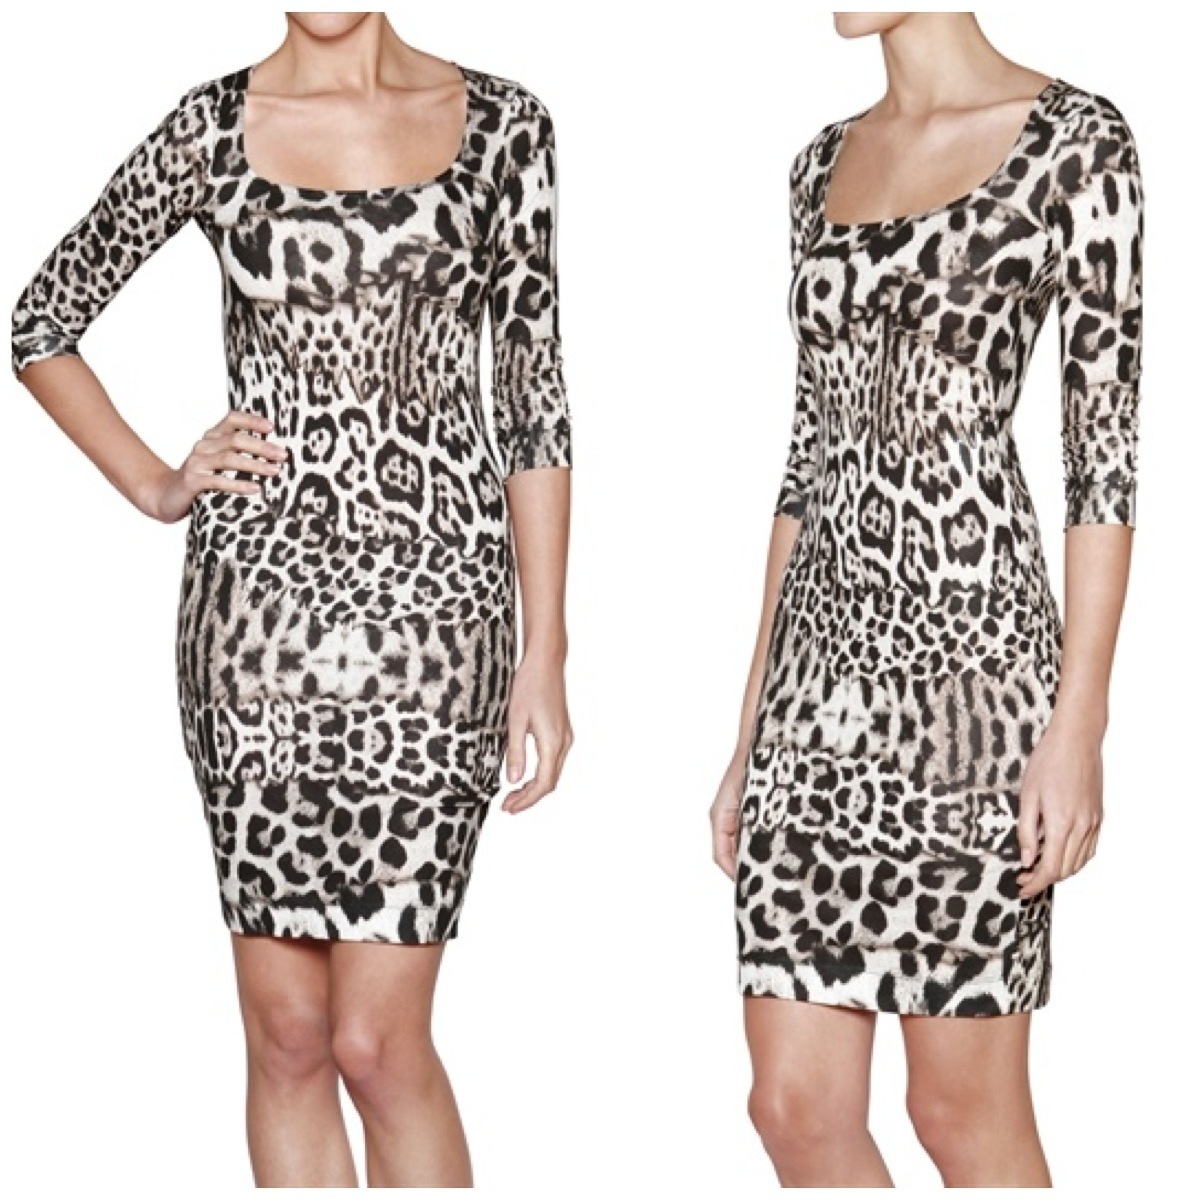 2f5e1347f0 JUST CAVALLI LEOPARD PRINT DRESS